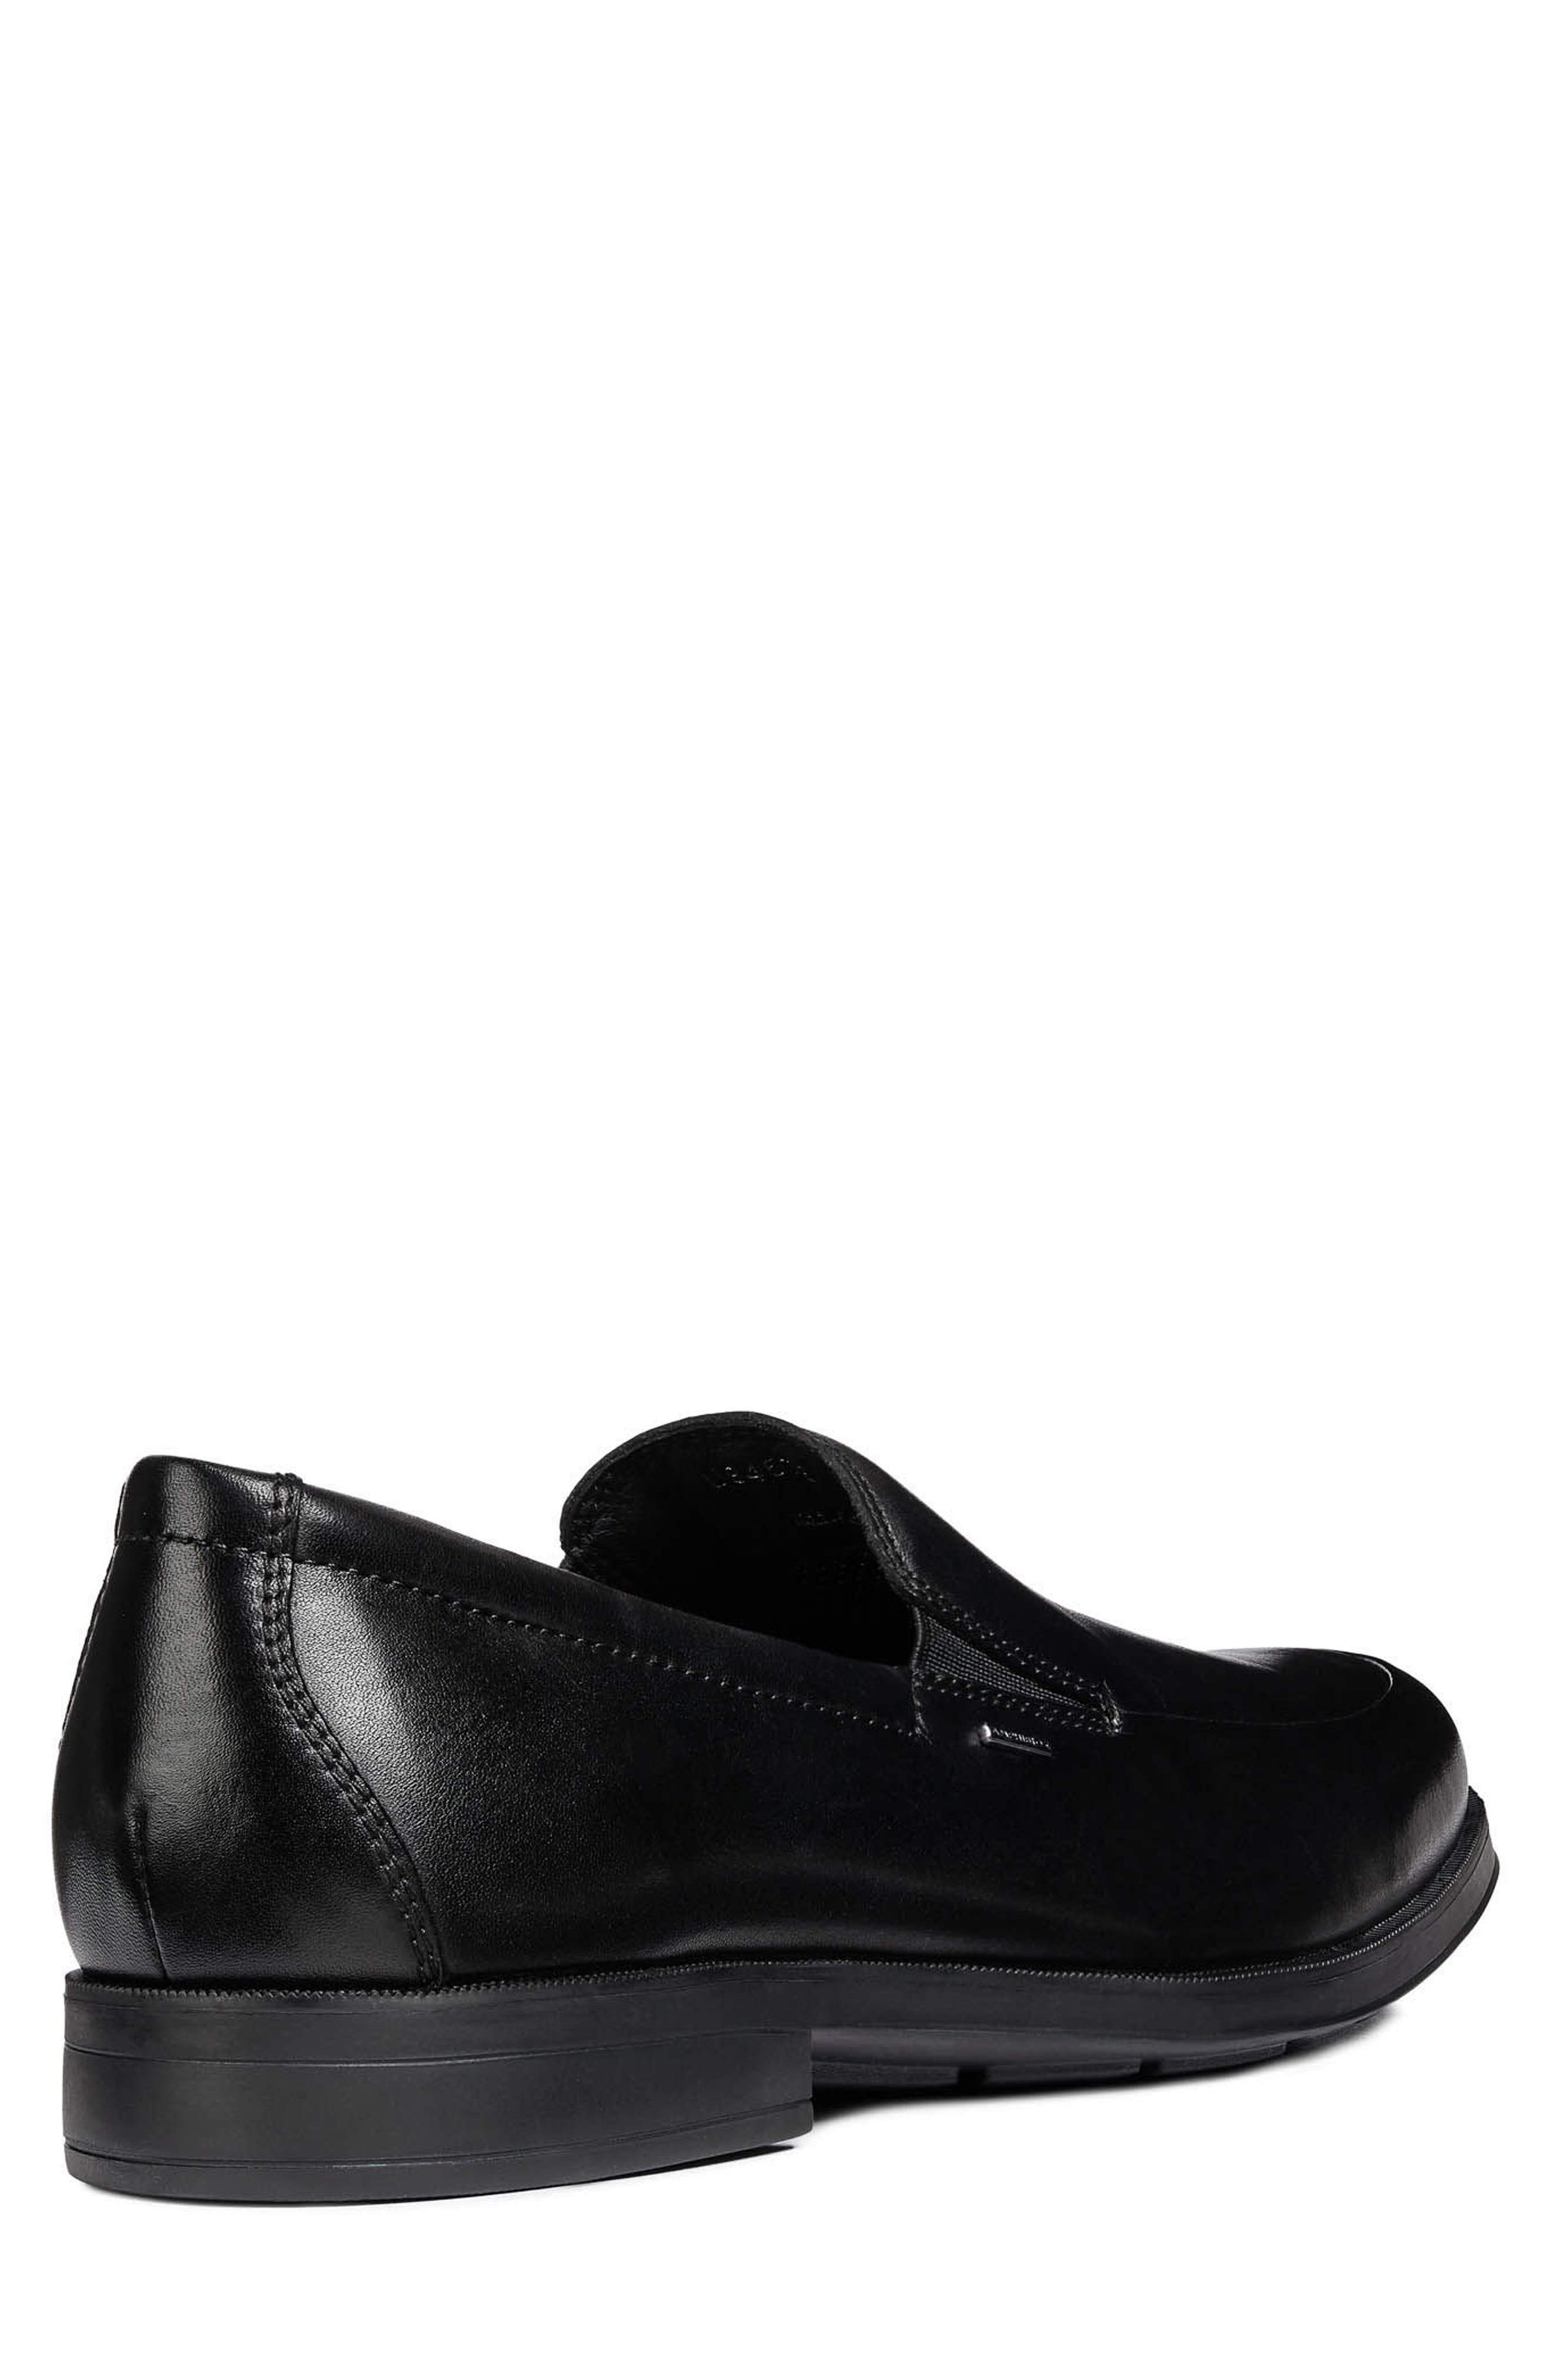 GEOX, Hilstone ABX 2 Loafer, Alternate thumbnail 2, color, 001